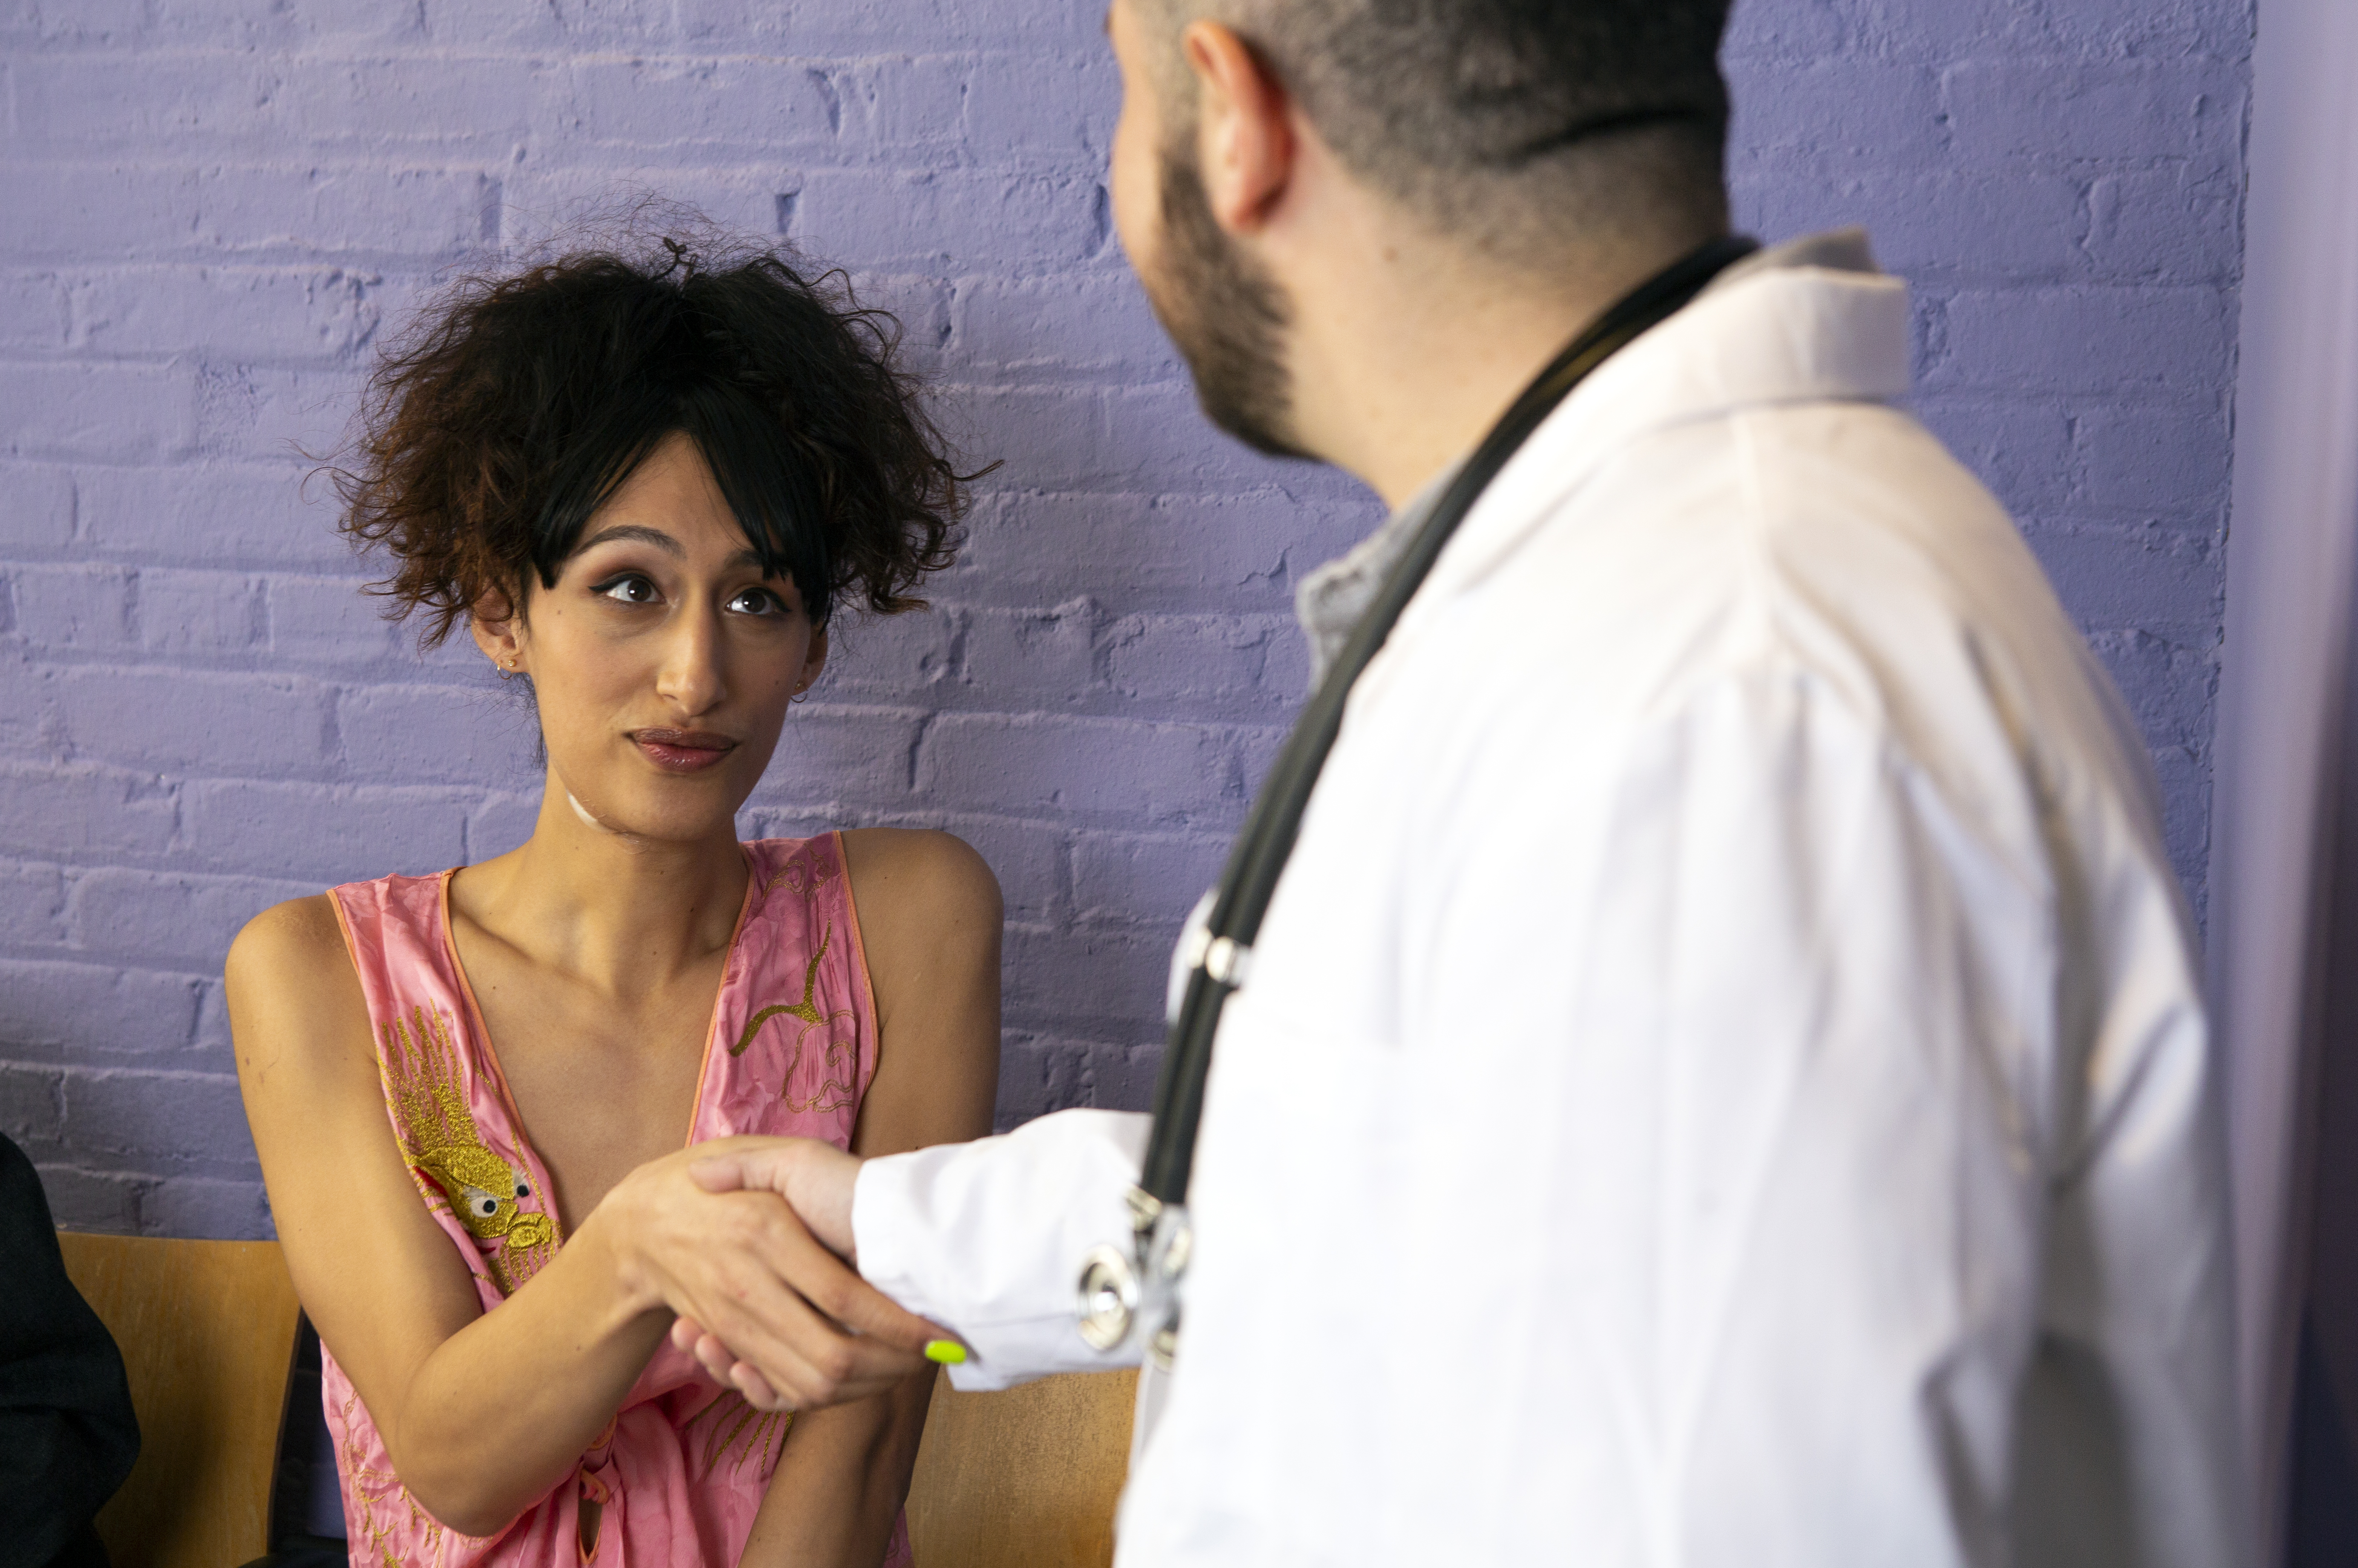 A transgender woman meeting her doctor in the waiting room of  doctor's office